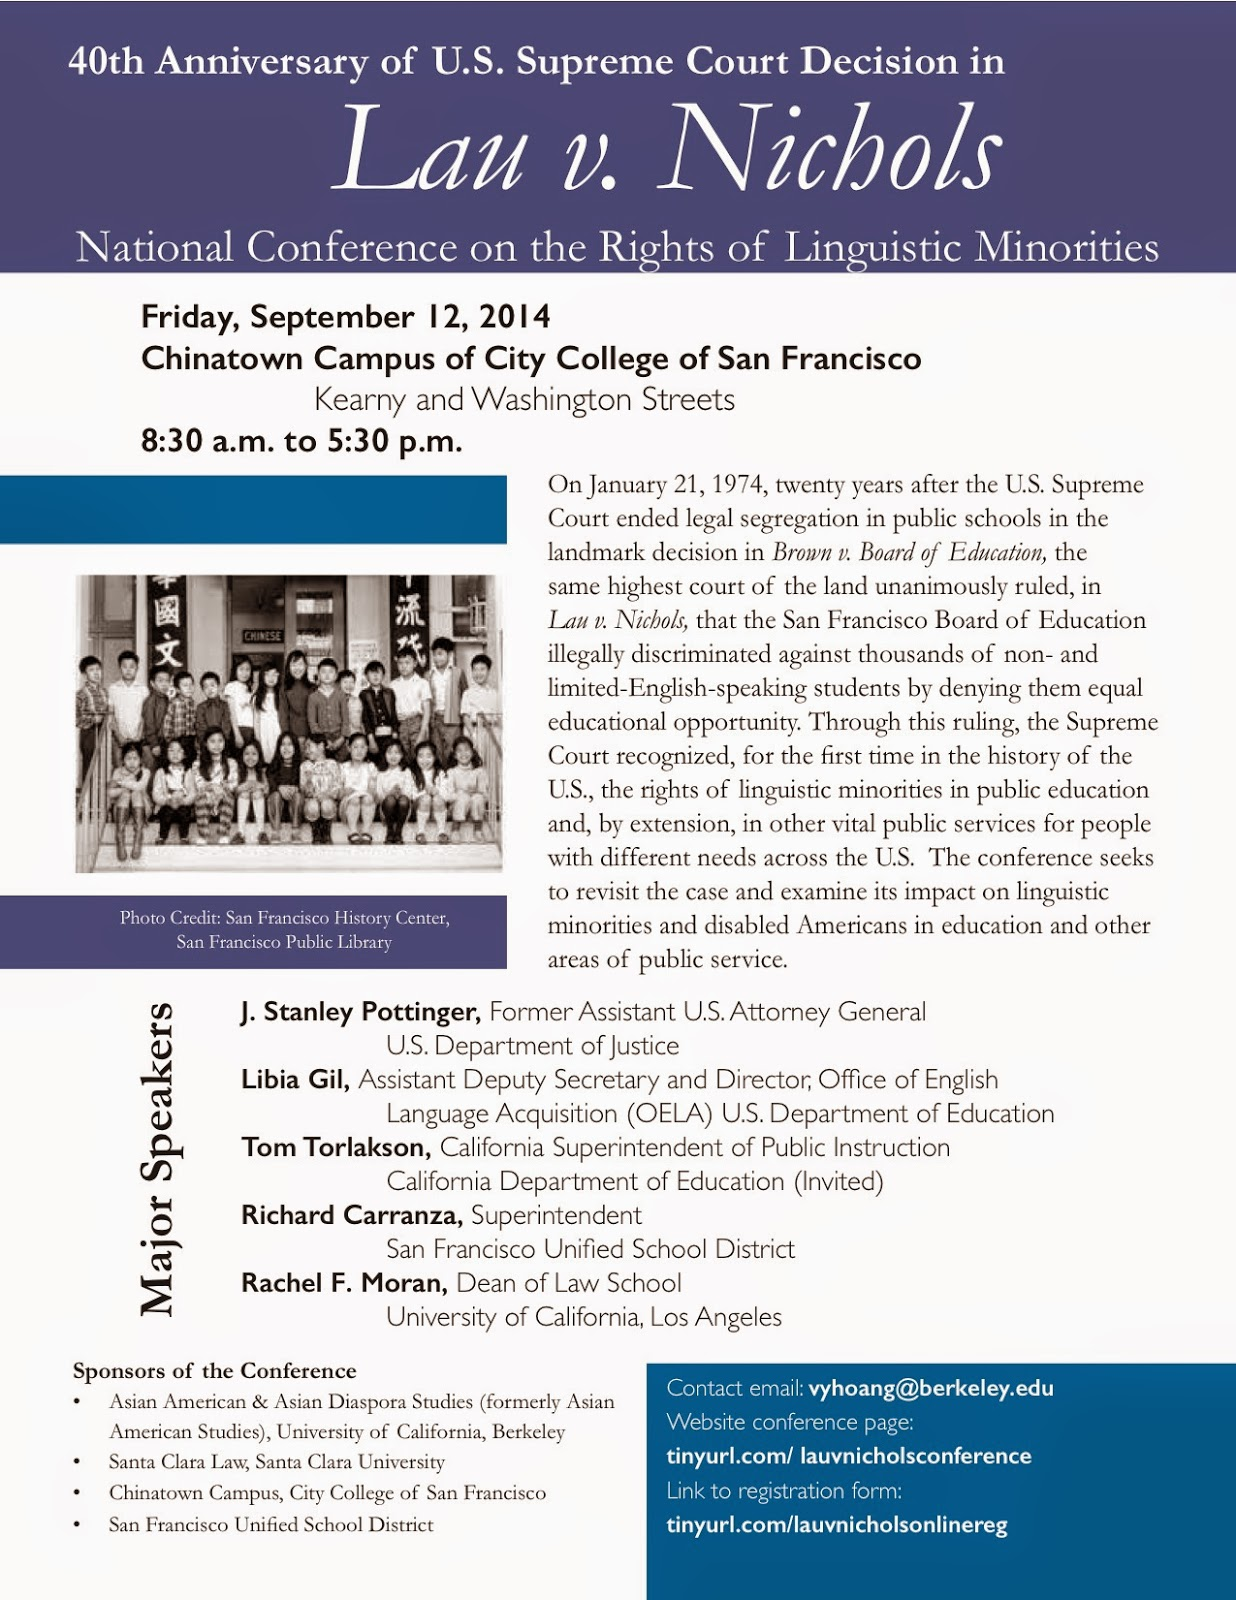 40th Anniversary of Lau v. Nichols Decision: A National Conference on the Rights of Linguistic Minorities